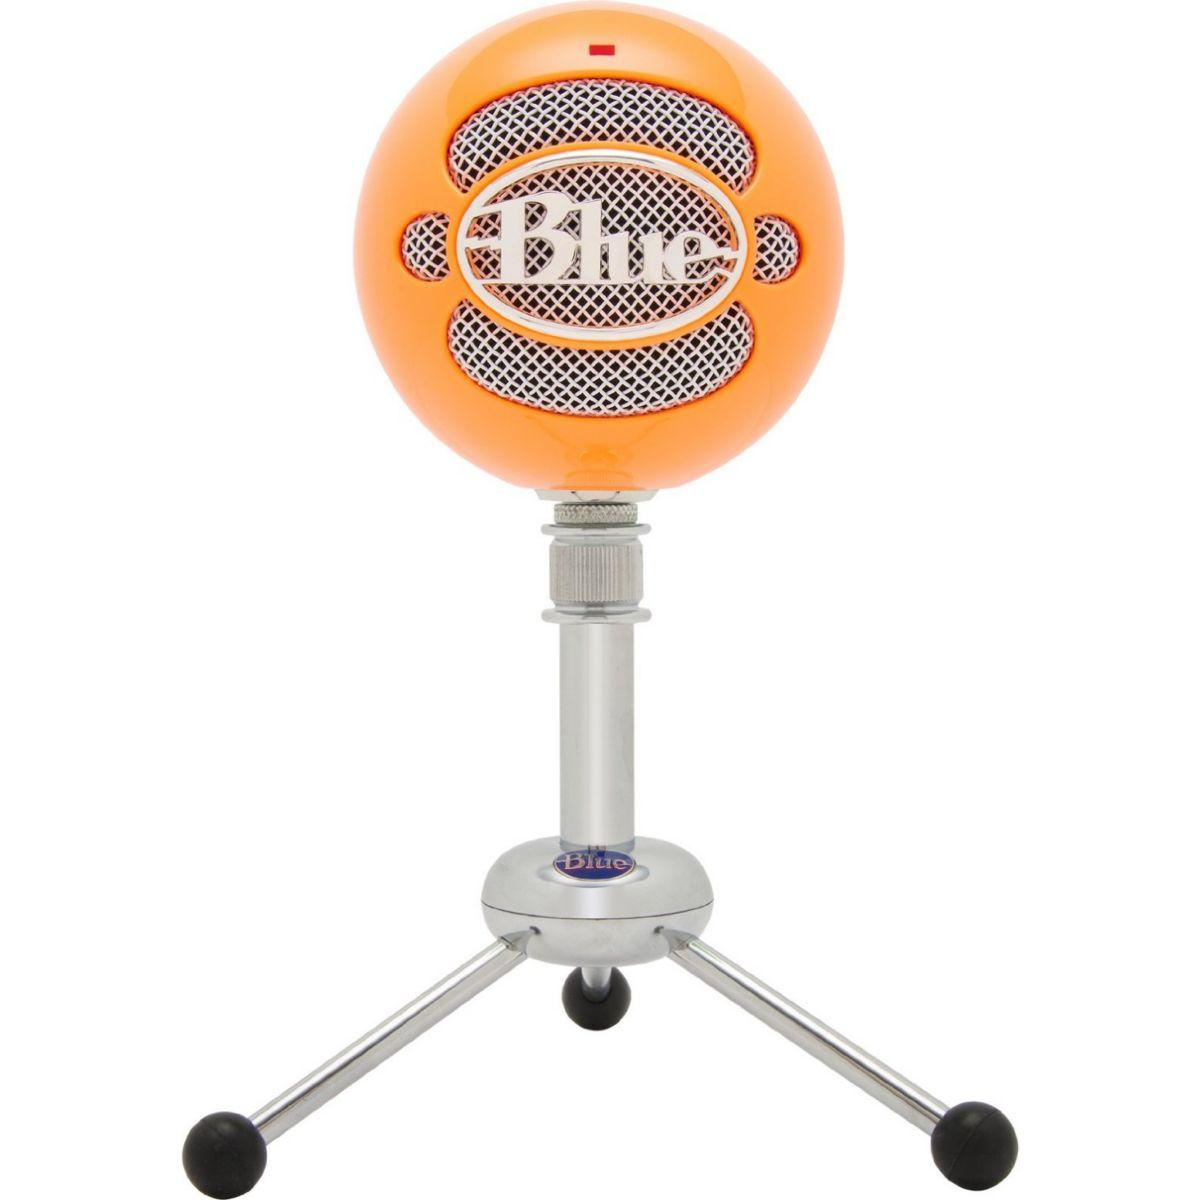 Micro gamer blue microphones snowball orange n�on - 20% de remise imm�diate avec le code : priv20 (photo)